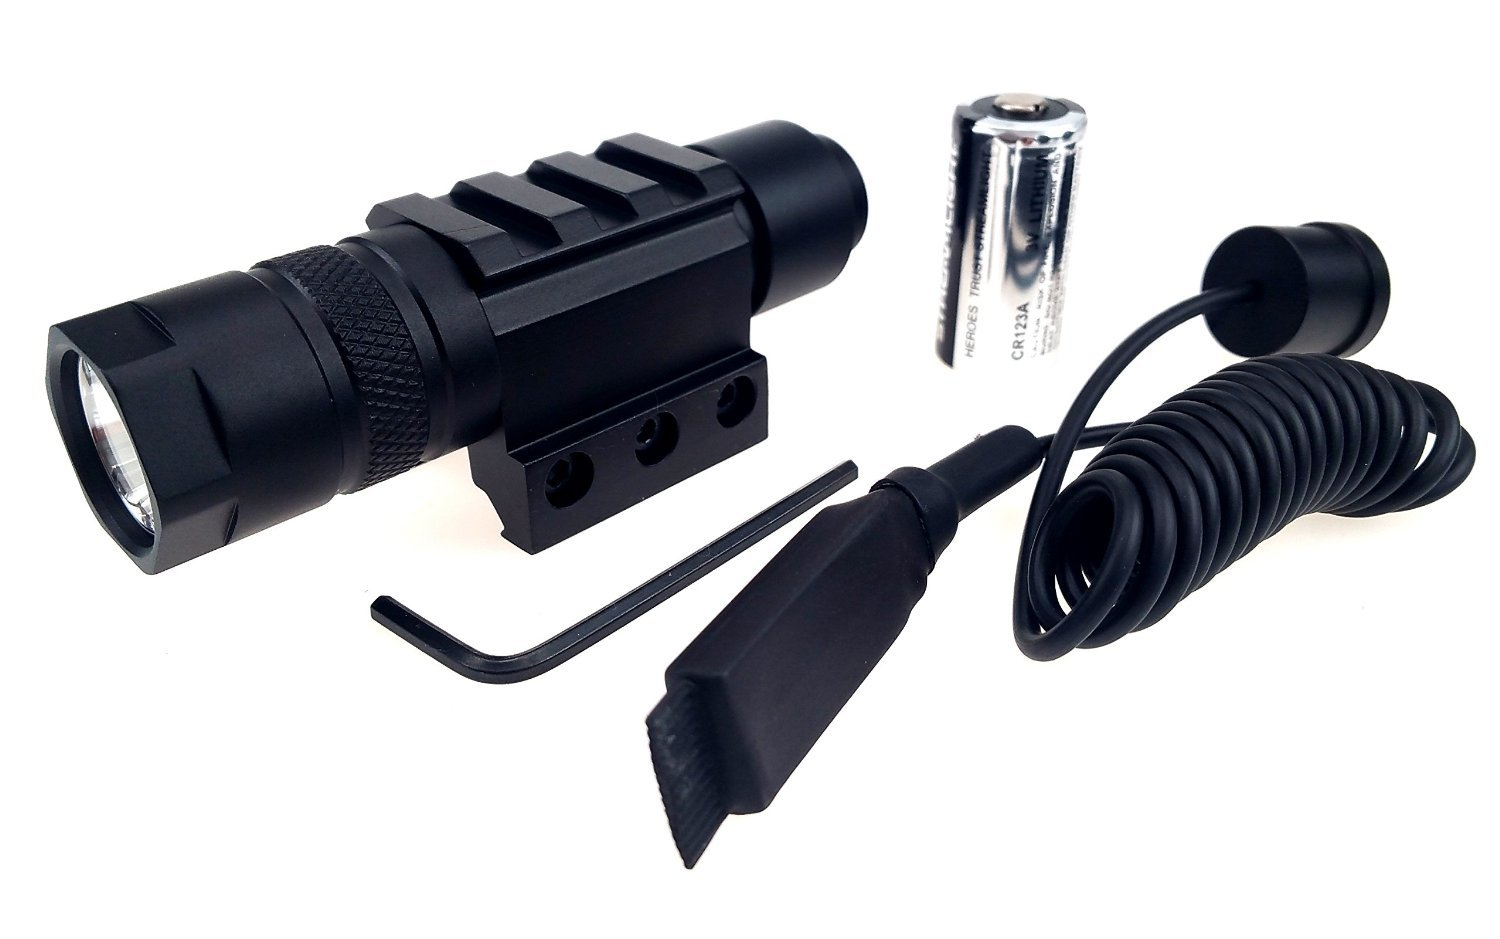 USA Cree LED T5 150 Lumens Amazingly Bright Black Tactical Flashlight w/ Pressure Switch, Rail Mount and Battery for Hunting Hiking Be Ready